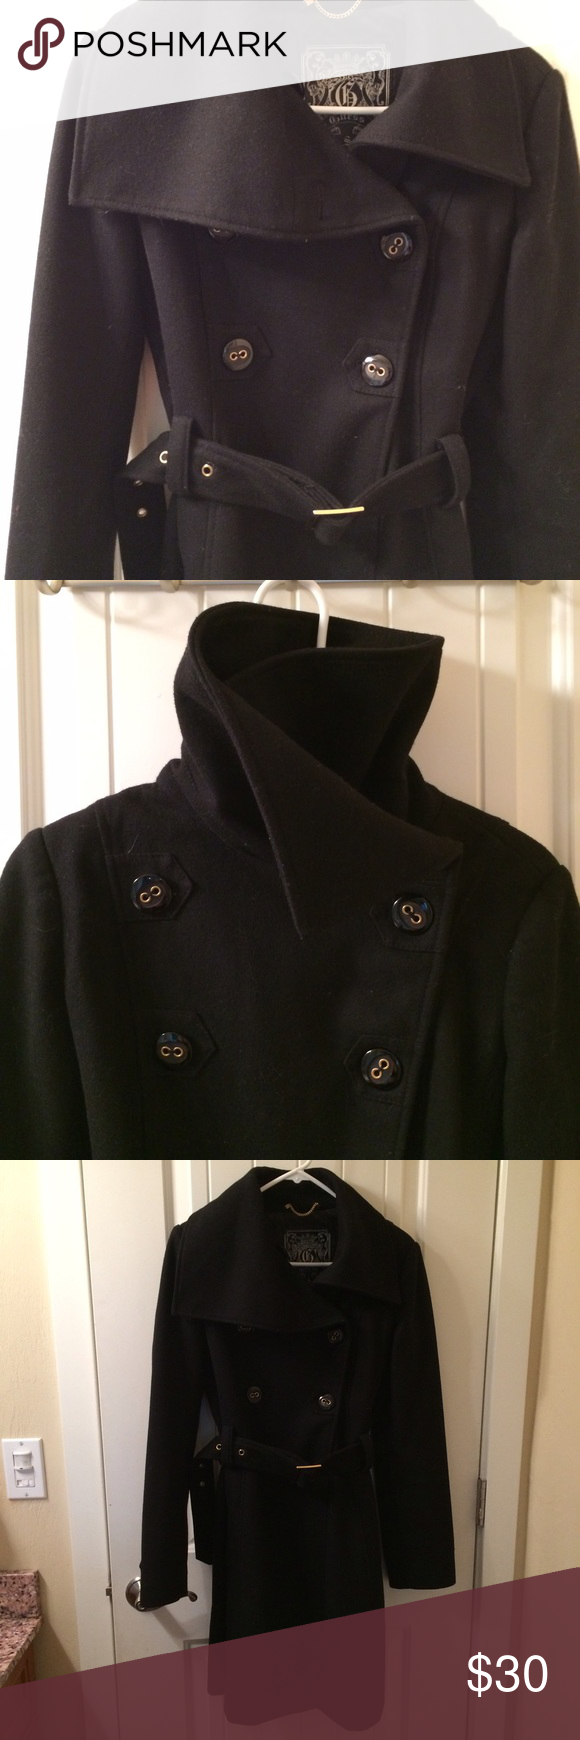 Beautiful wool Guess coat | High collar, Conditioning and Coats